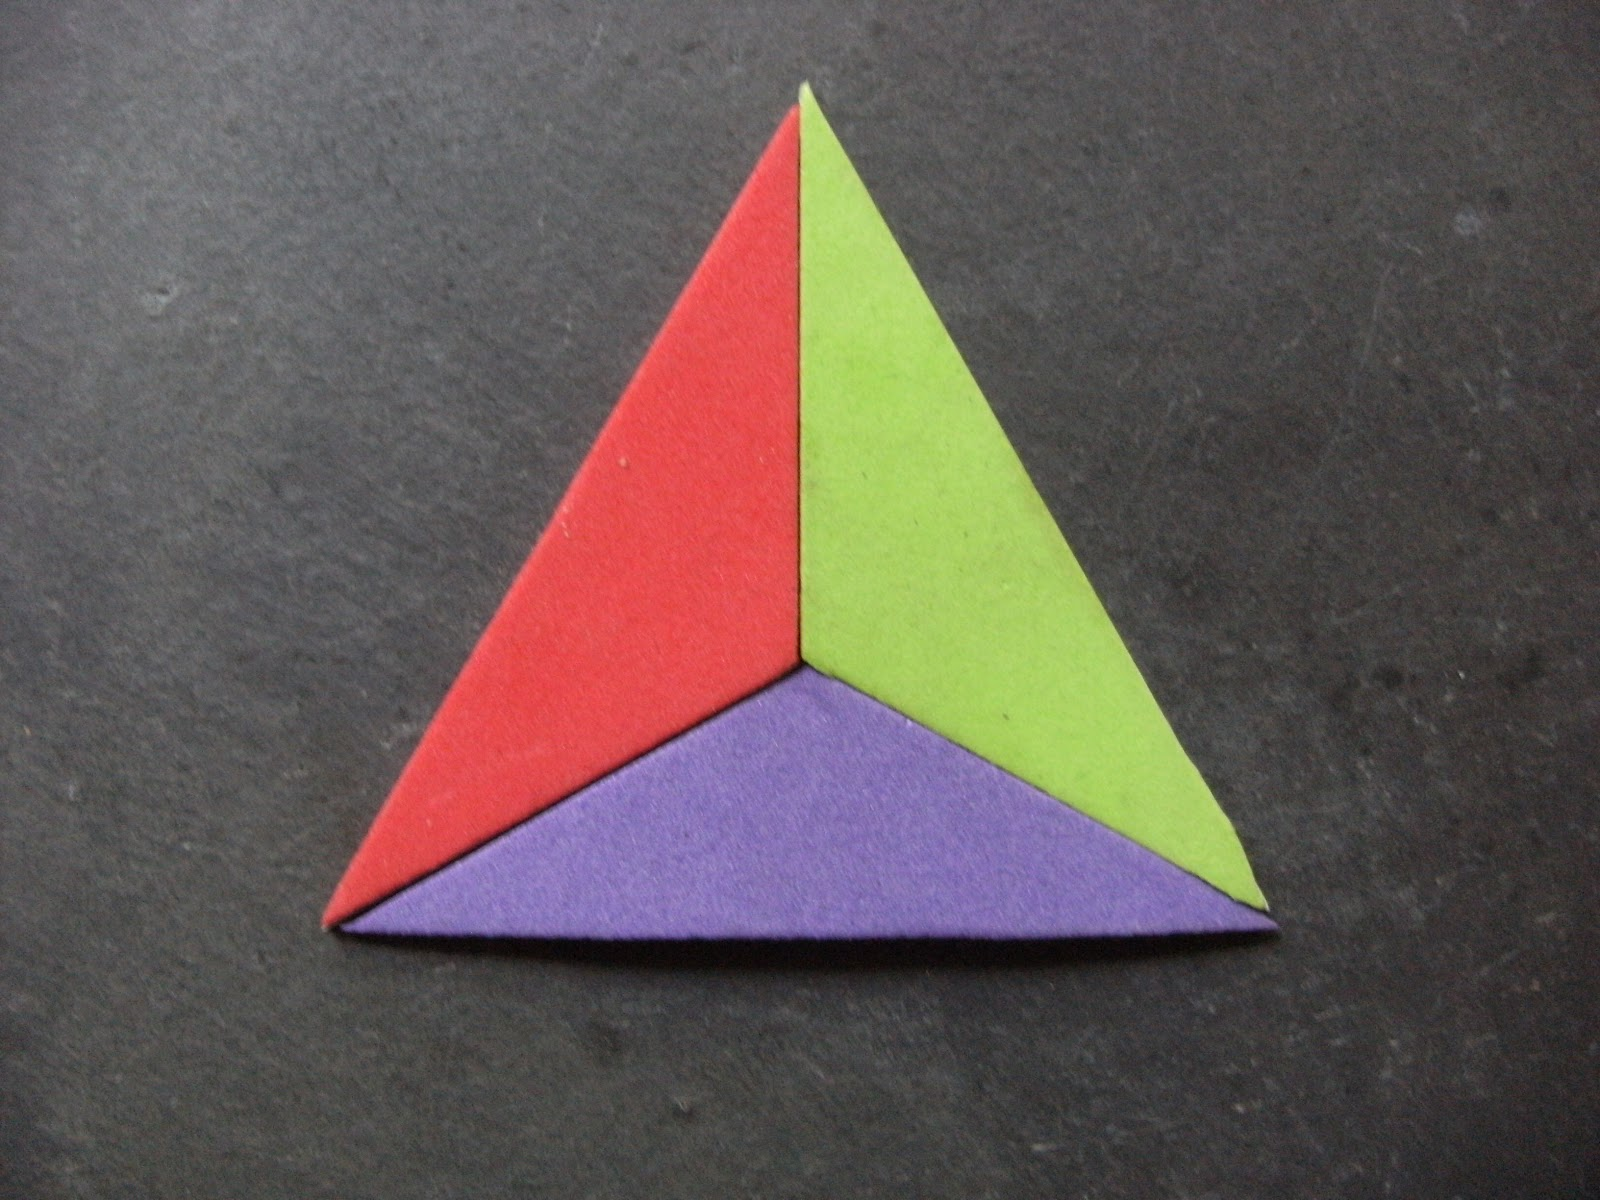 Acute triangle in real life